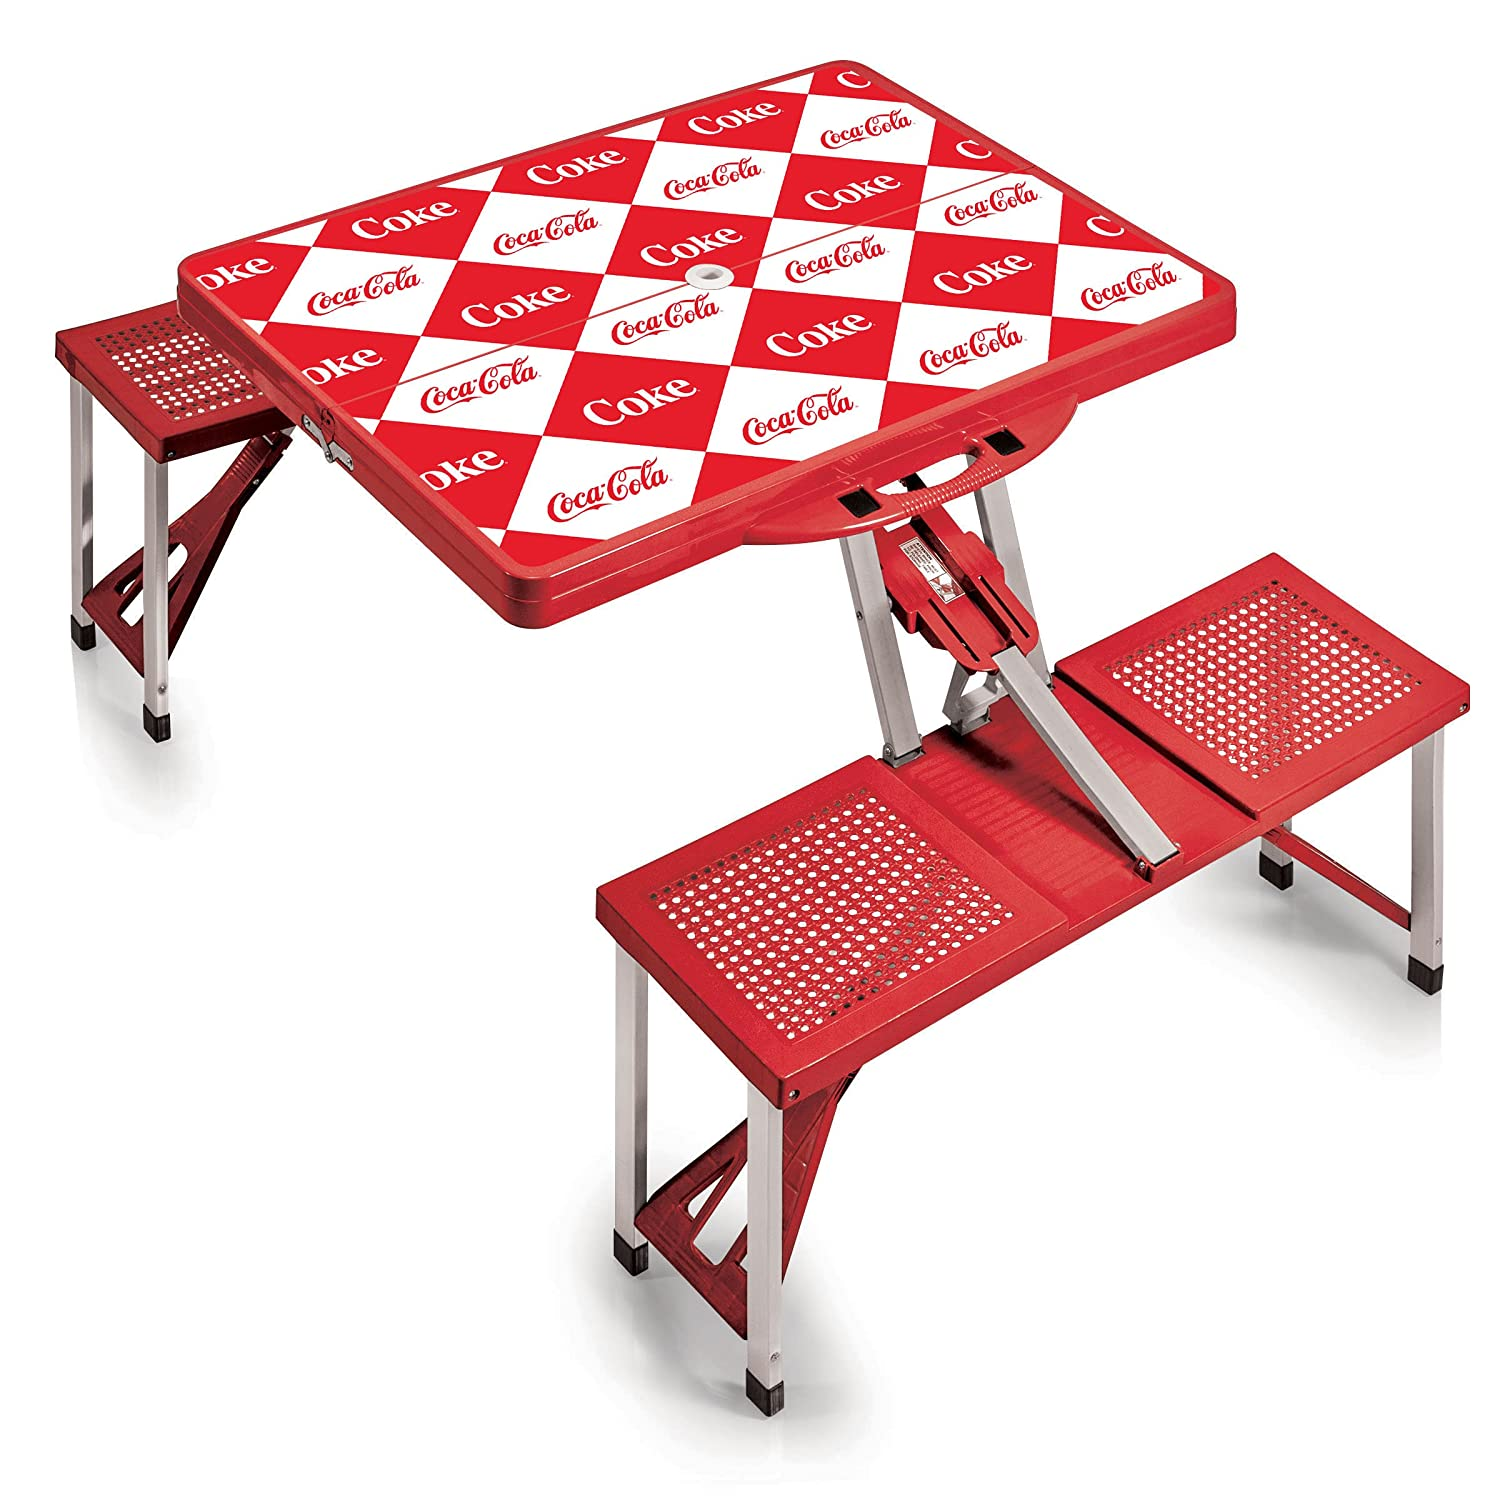 Amazon.com : Picnic Time Coca Cola Portable Picnic Table With Seating For  4, Bottle Print : Garden U0026 Outdoor